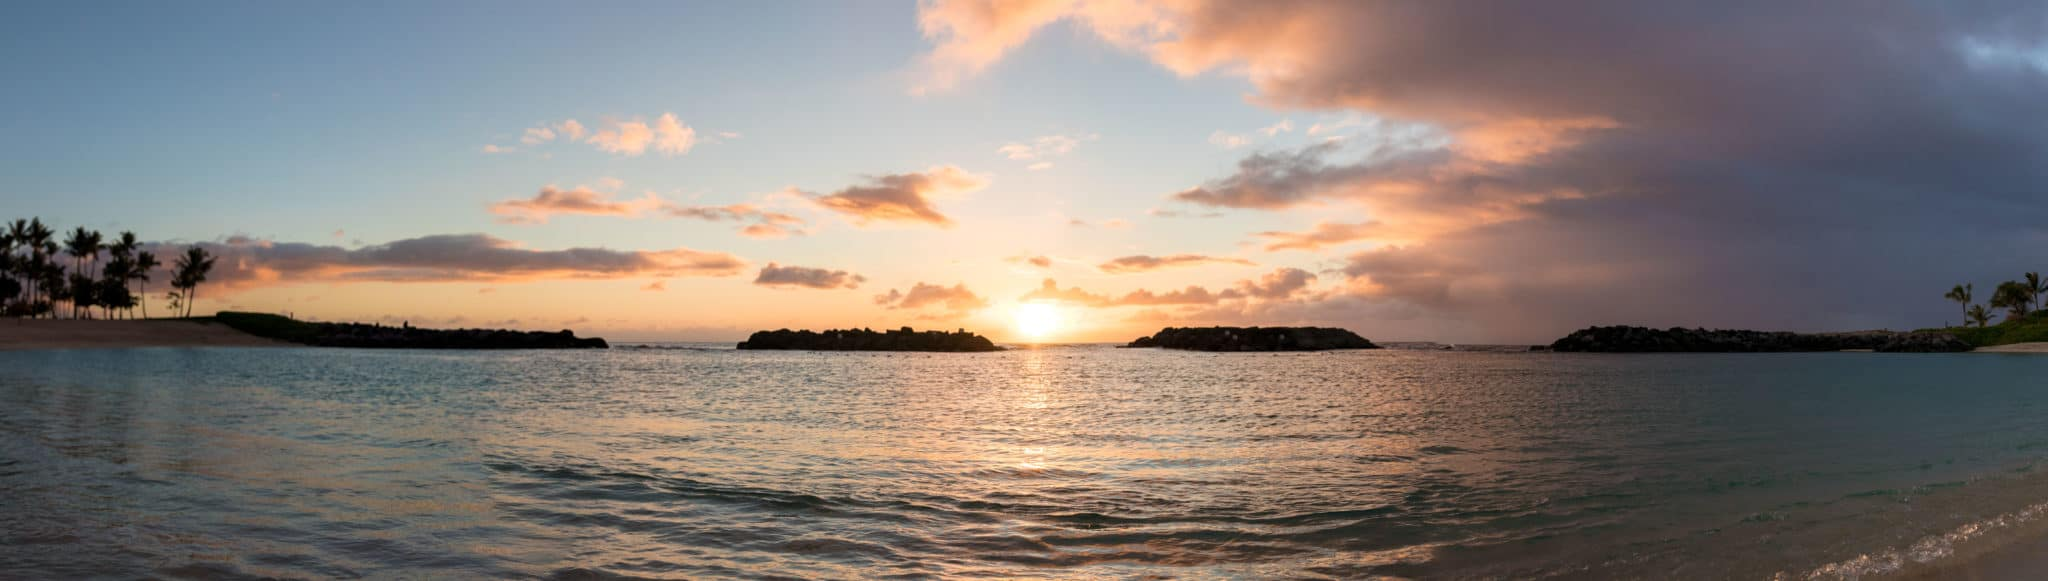 Love watching the sun go down over the Ko Olina lagoon on Oahu's Leeward side.